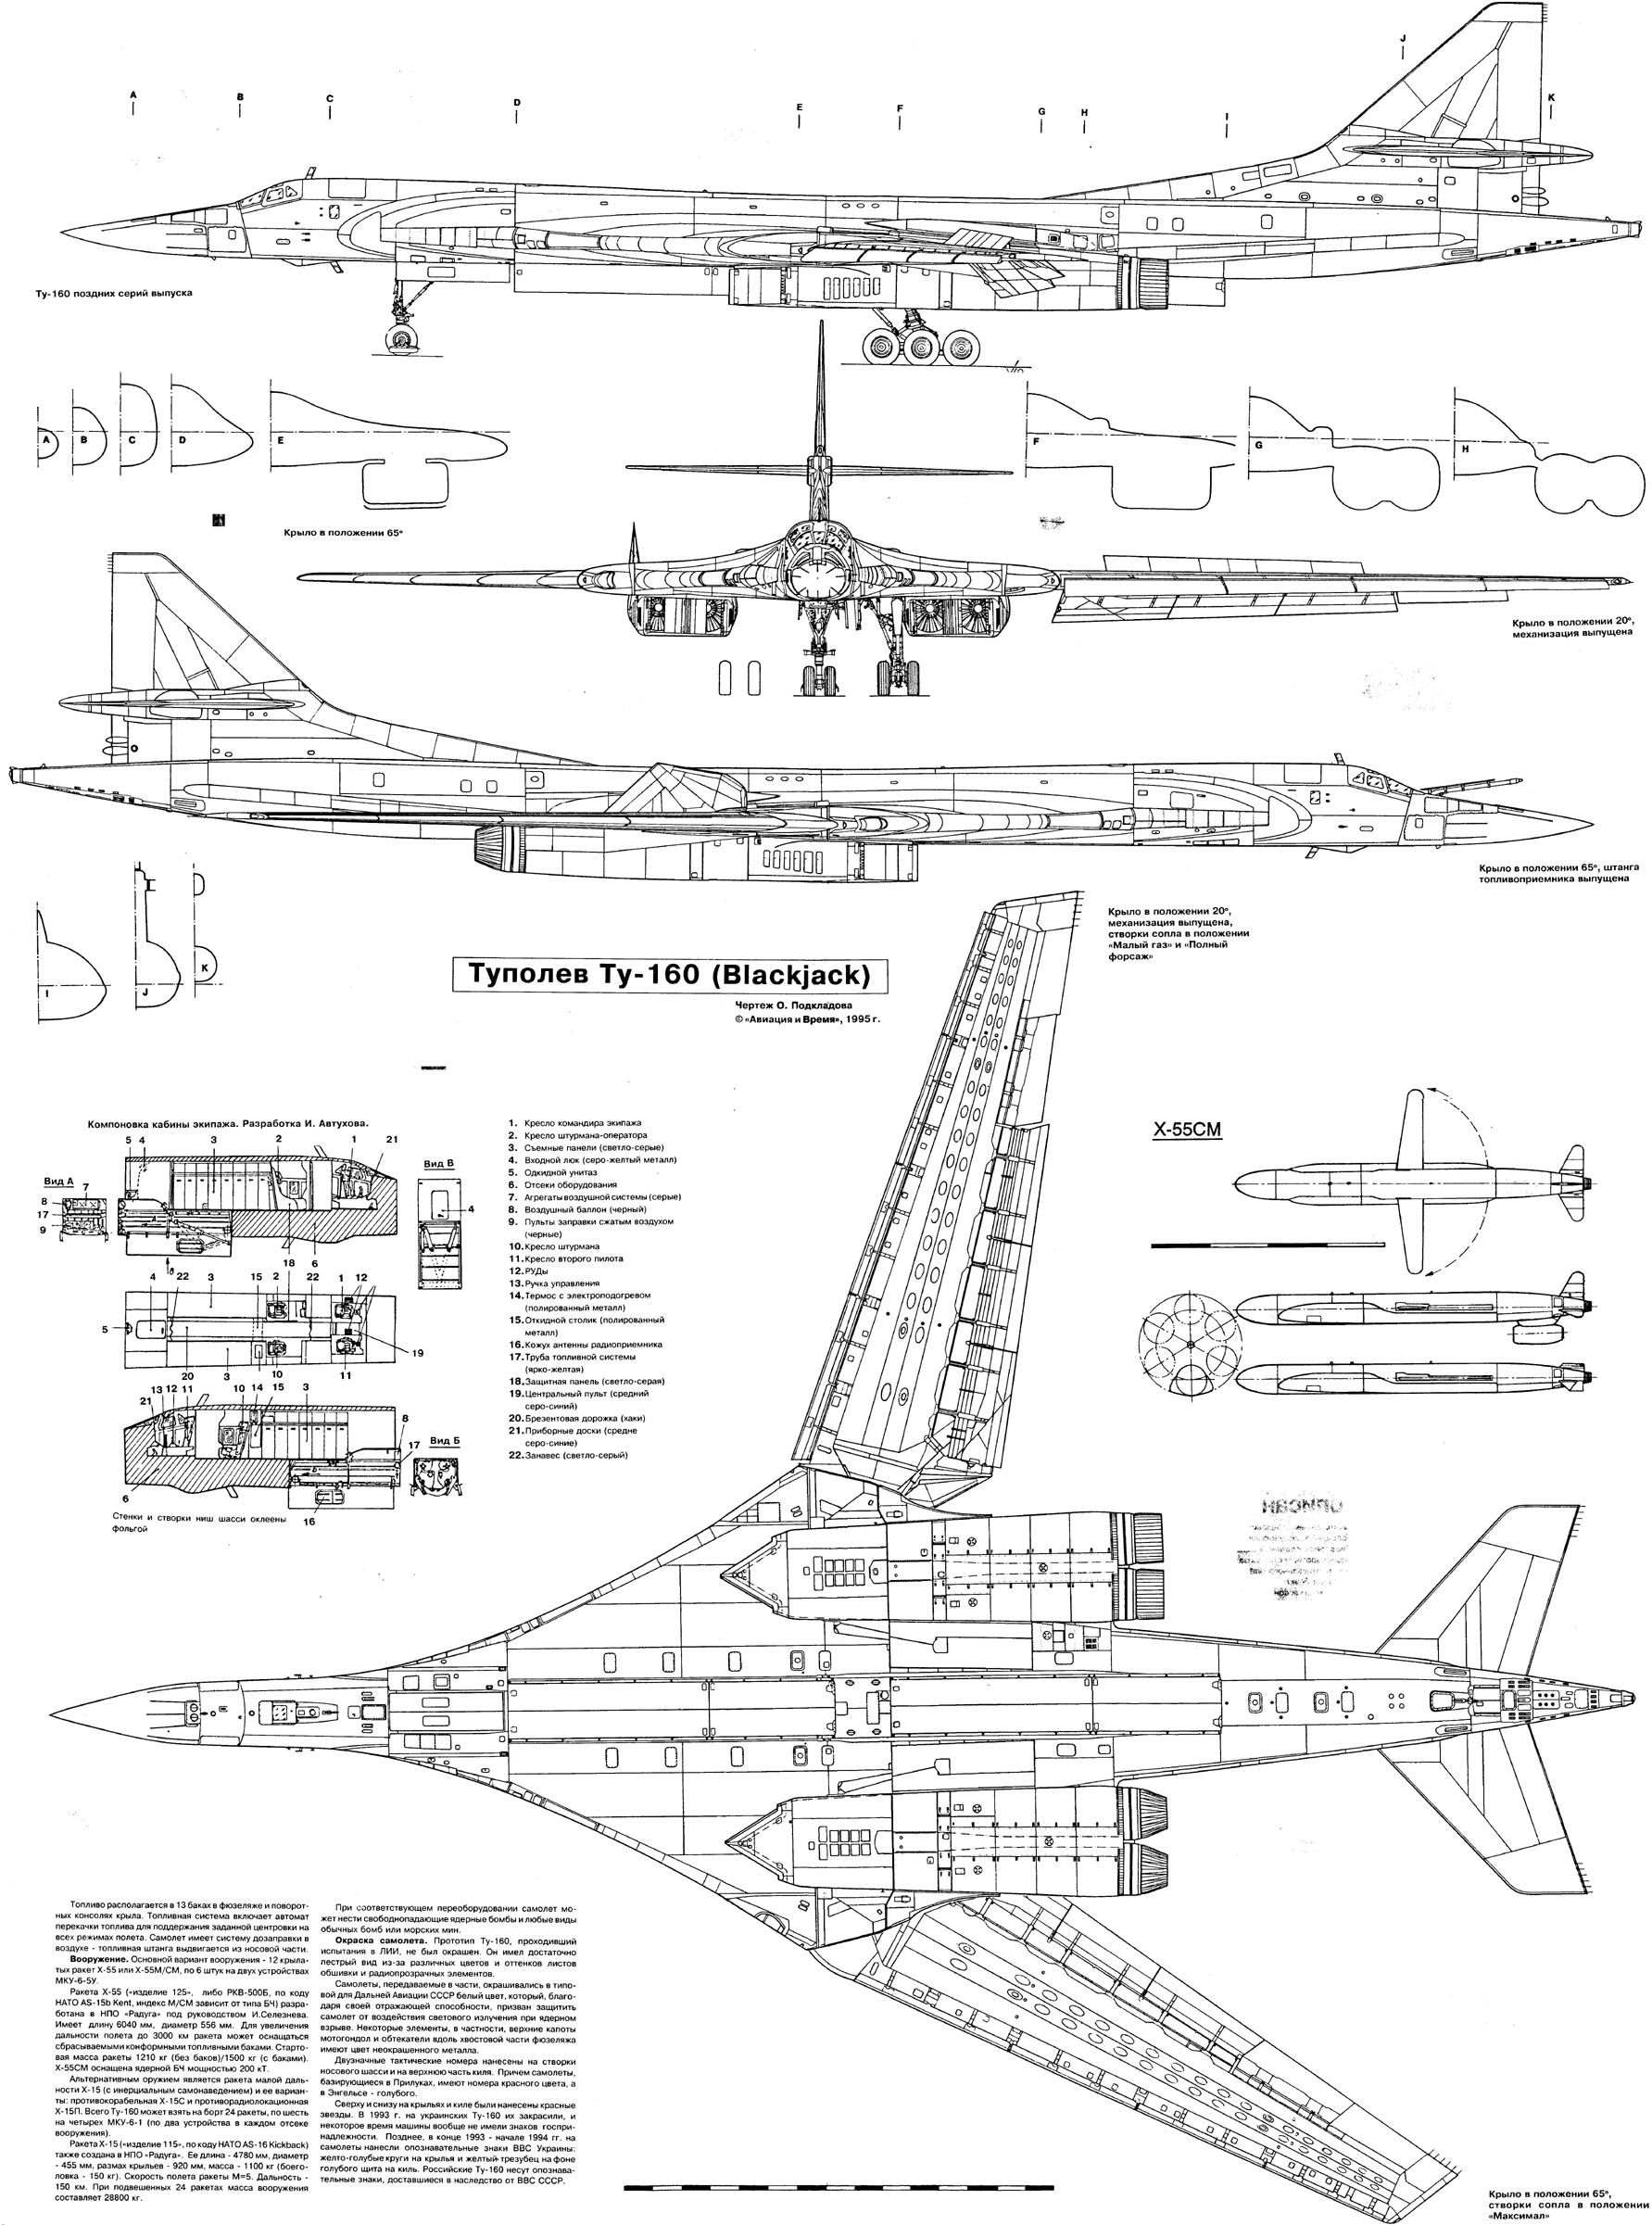 tu160 schematics planes pinterest aircraft, aviation and pa systems schematics aviation engineering schematics #1